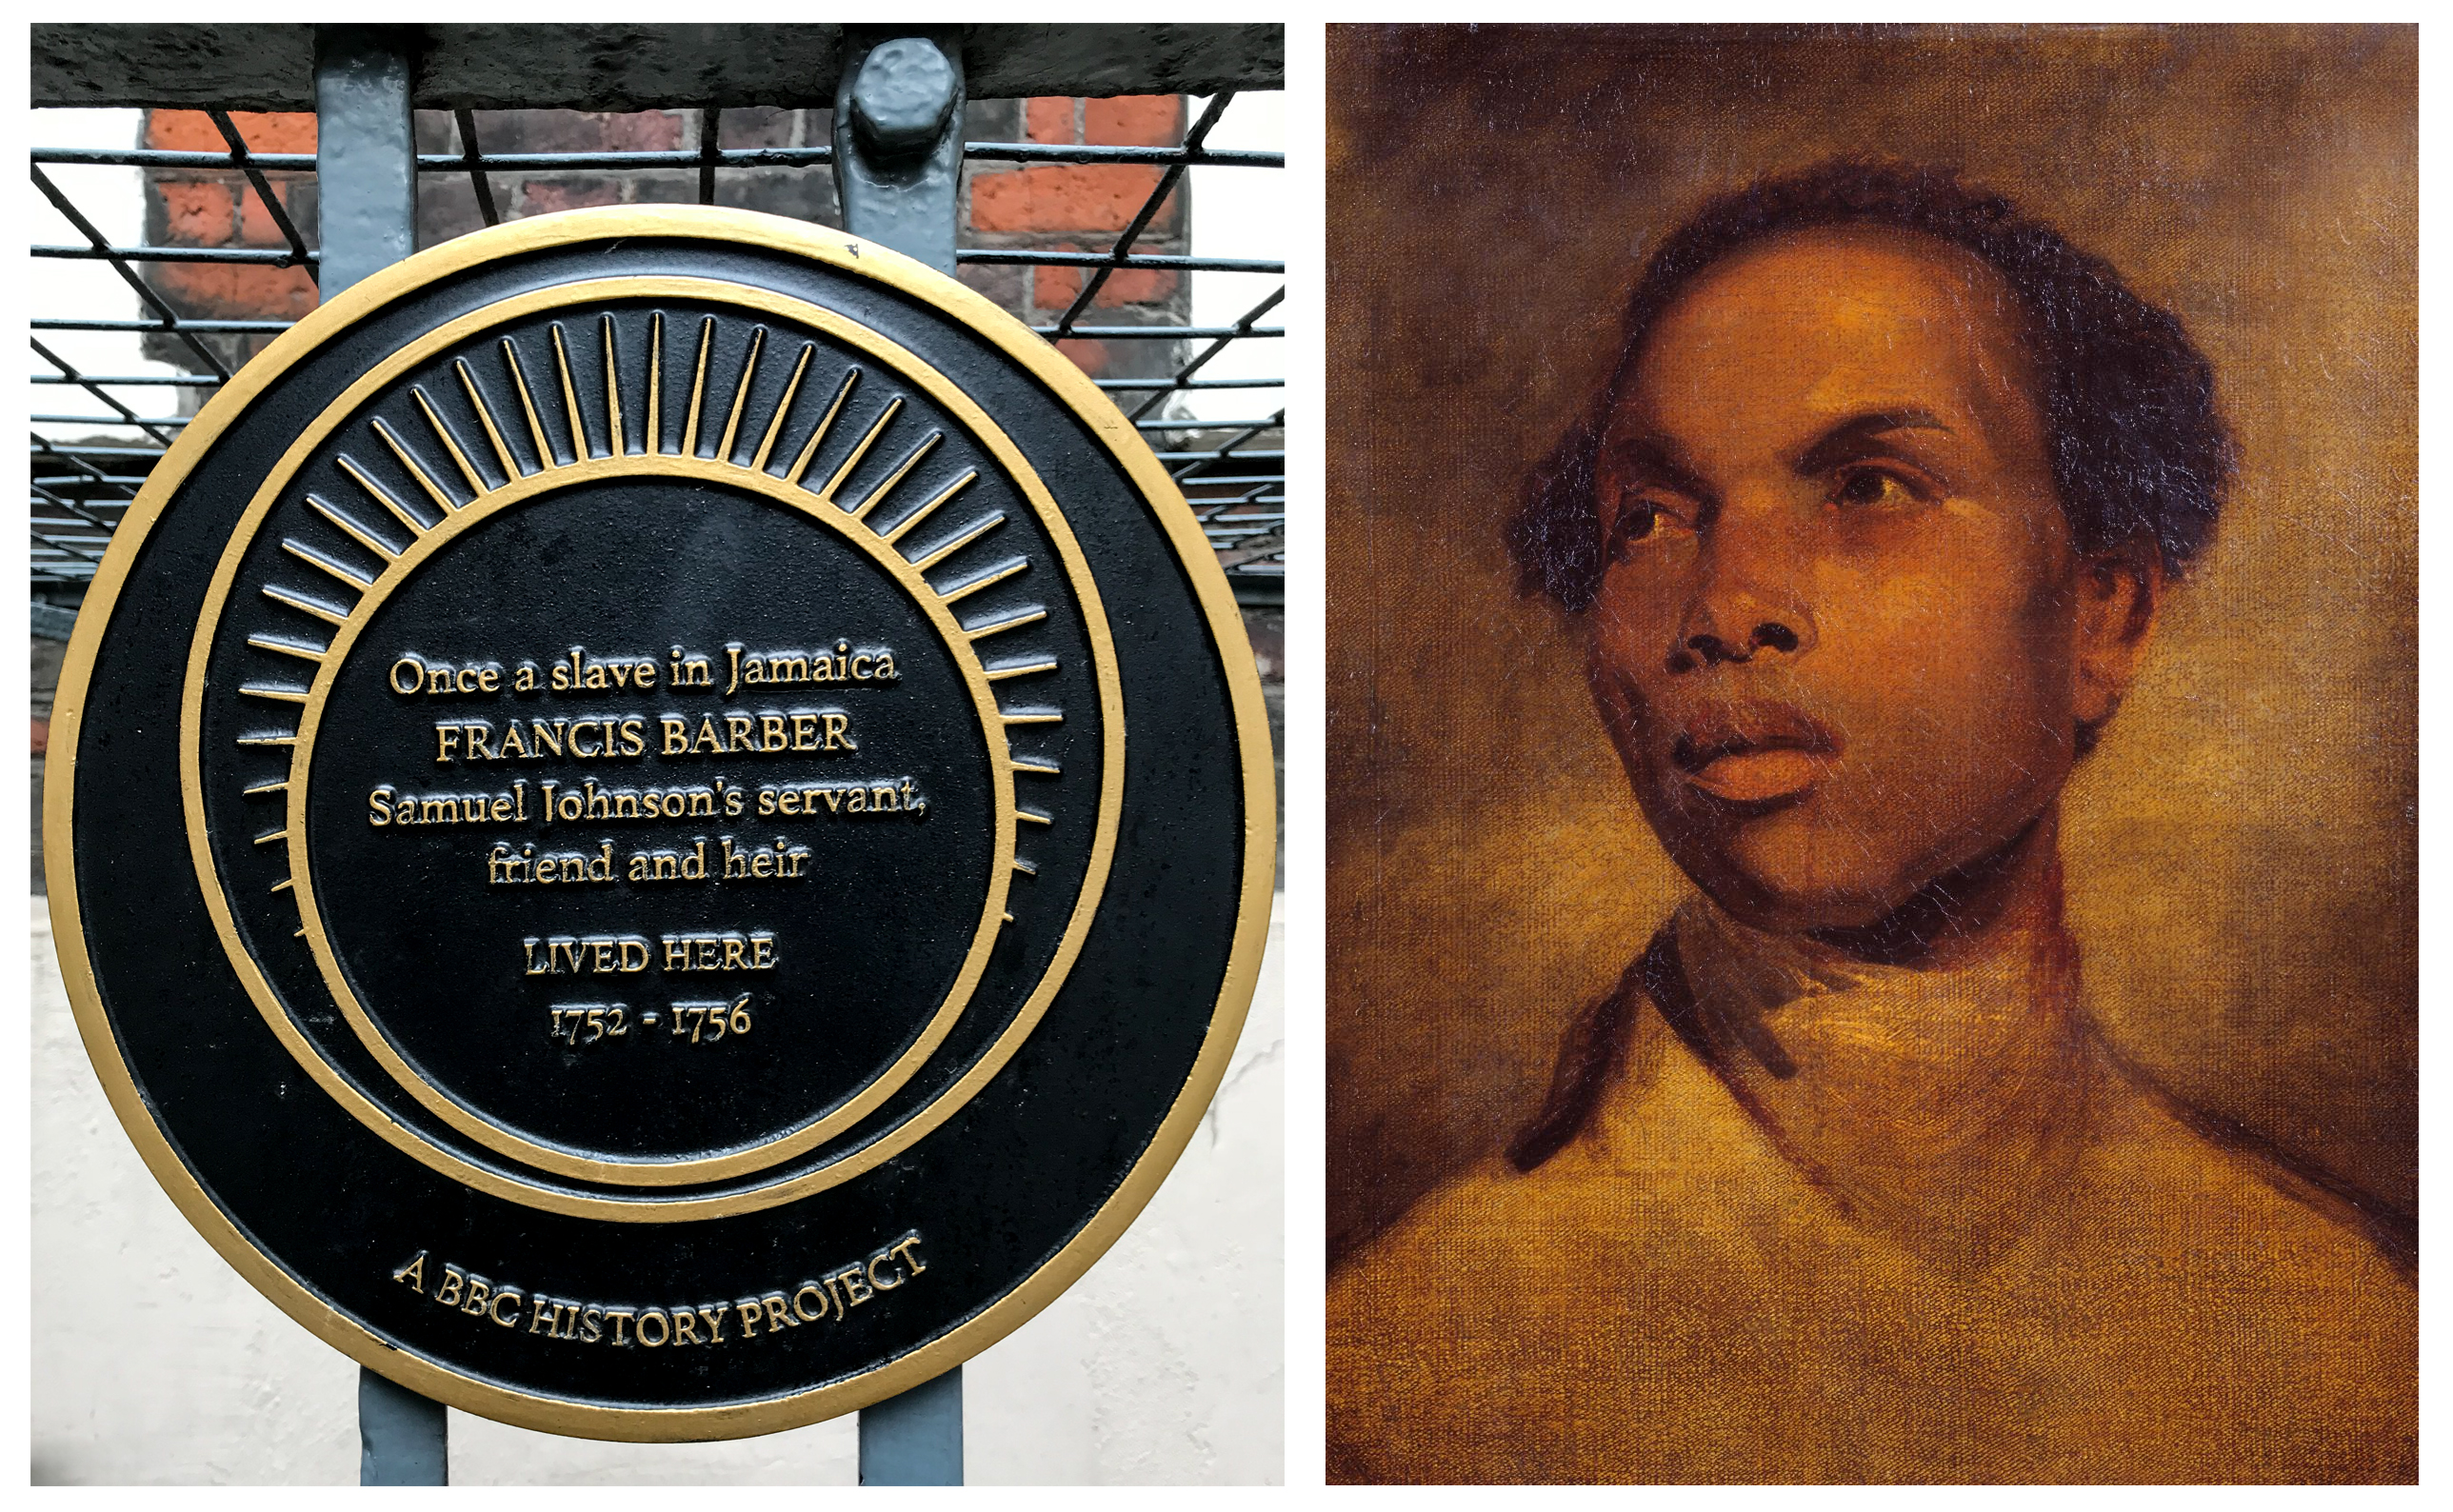 Francis Barber Black History Plaque